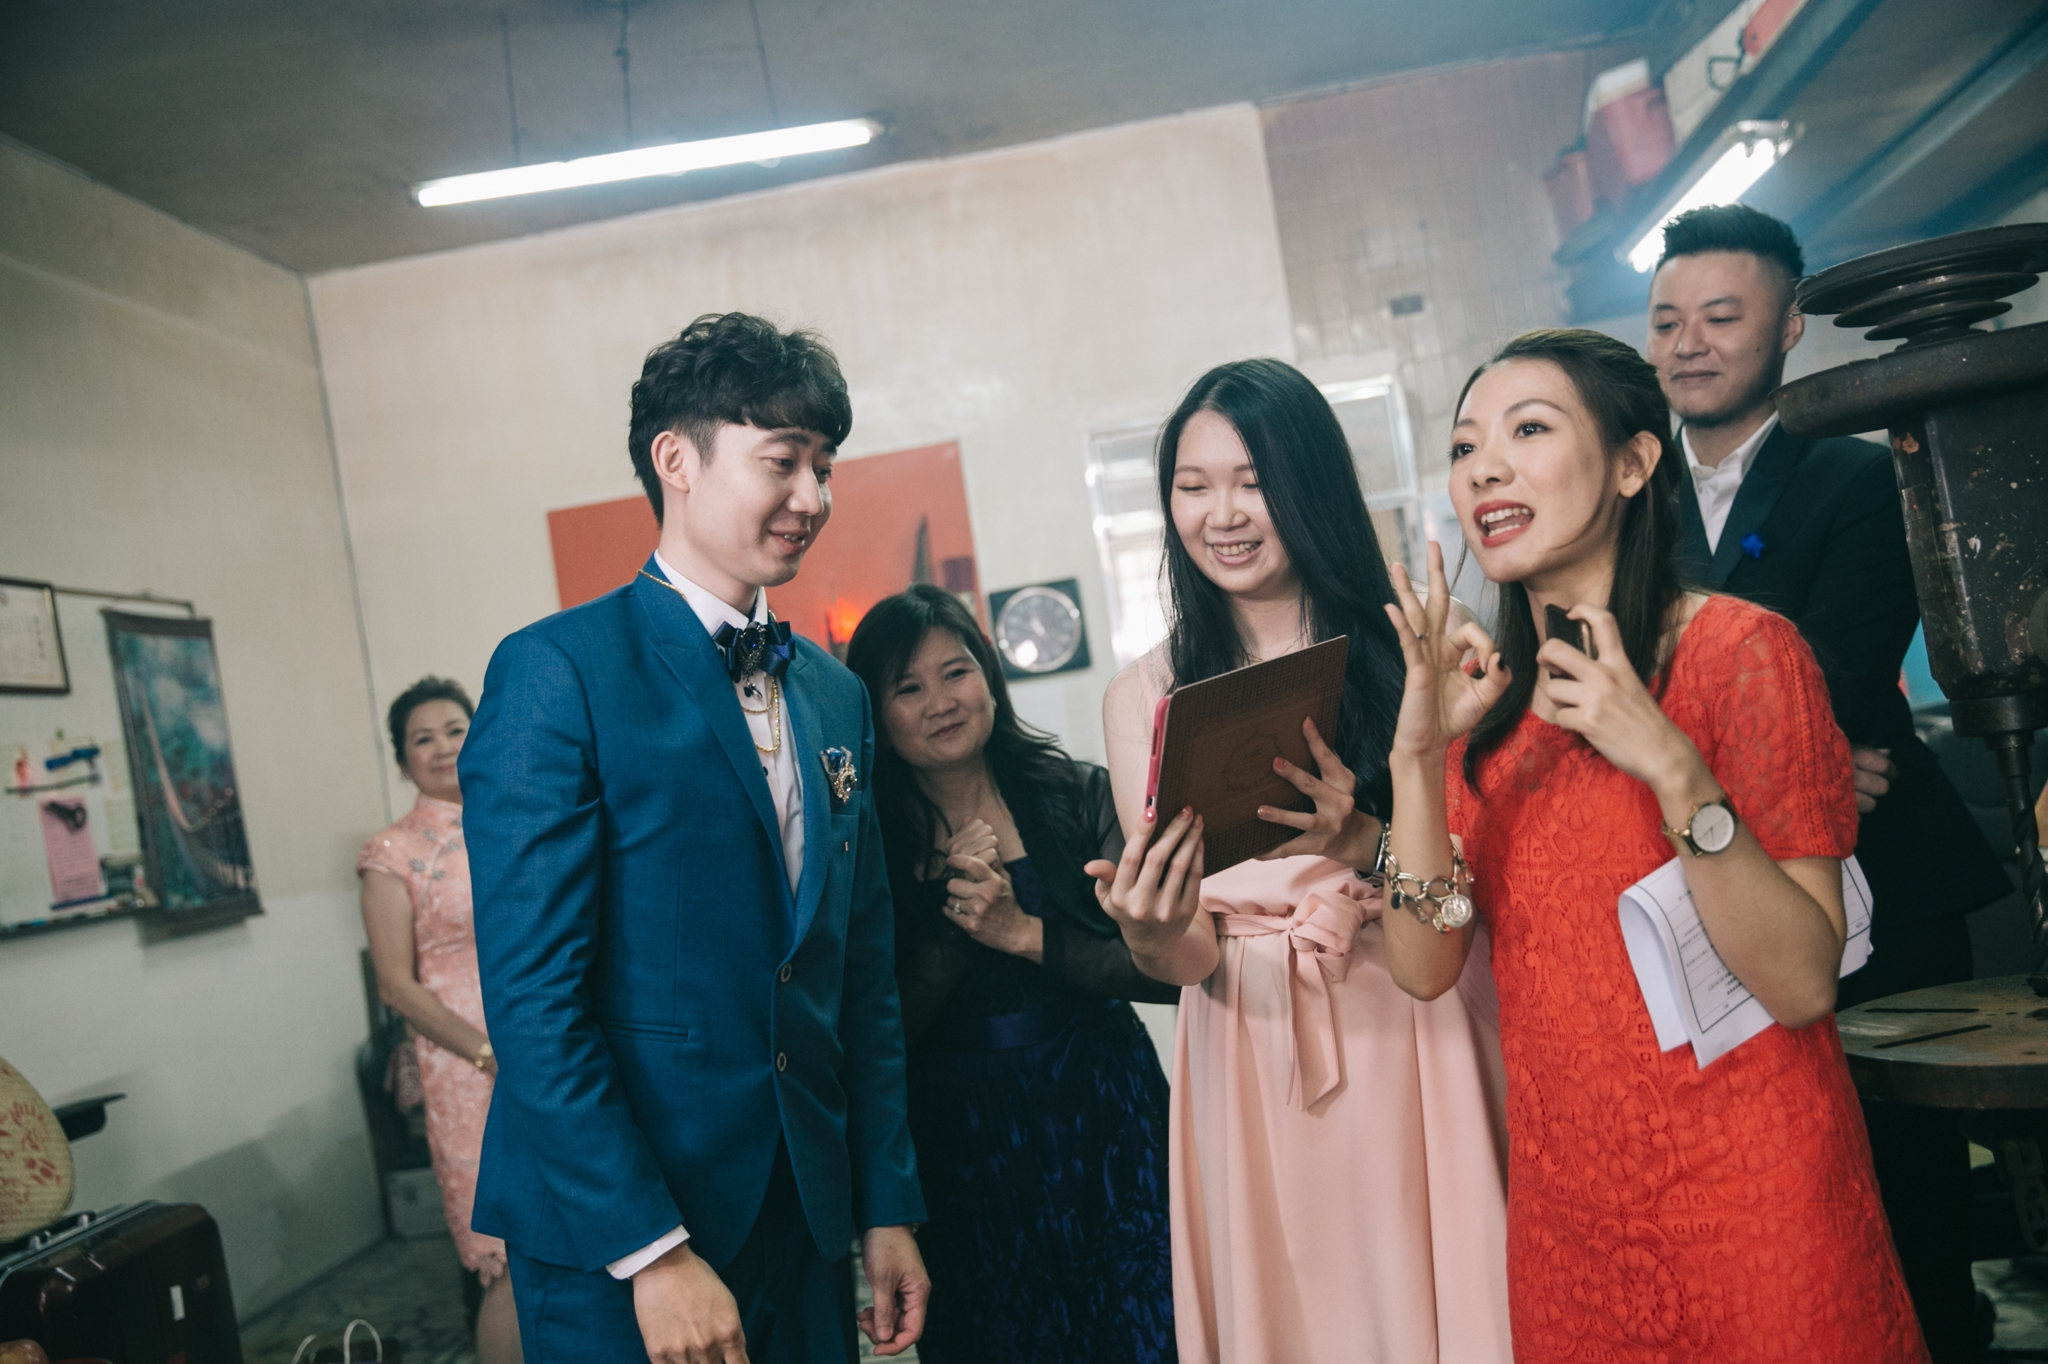 Keddy+Richard-wedding-新莊頤品飯店-061.jpg